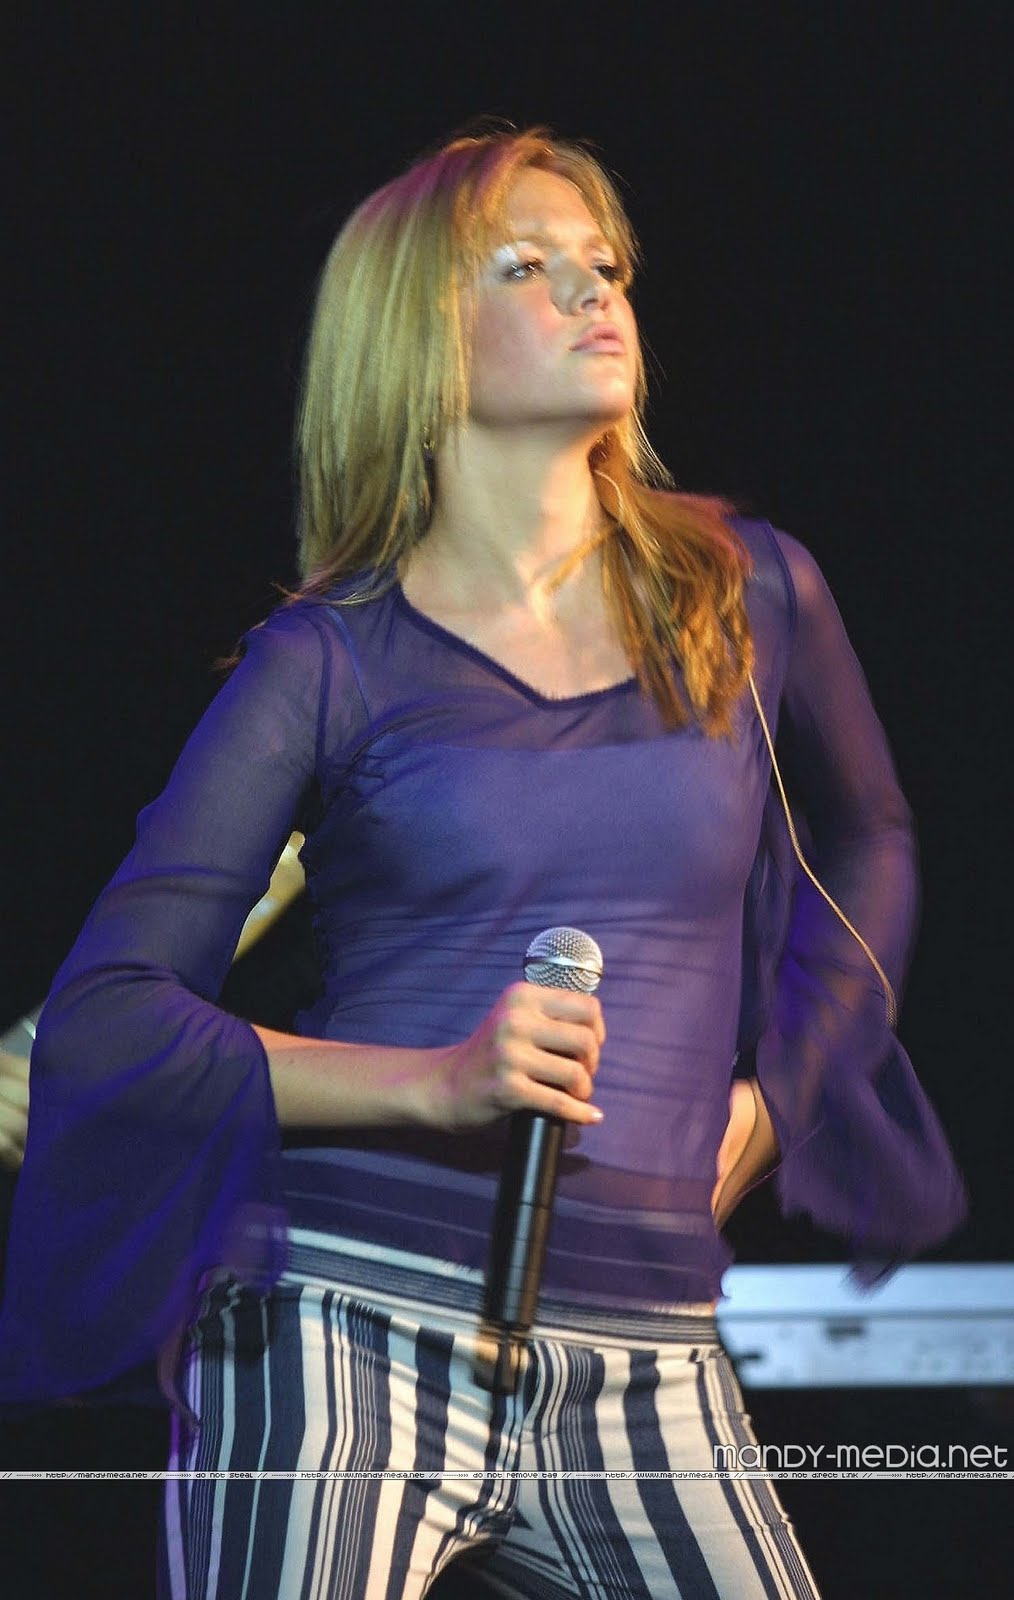 hollywood Mandy Moore in live work concert